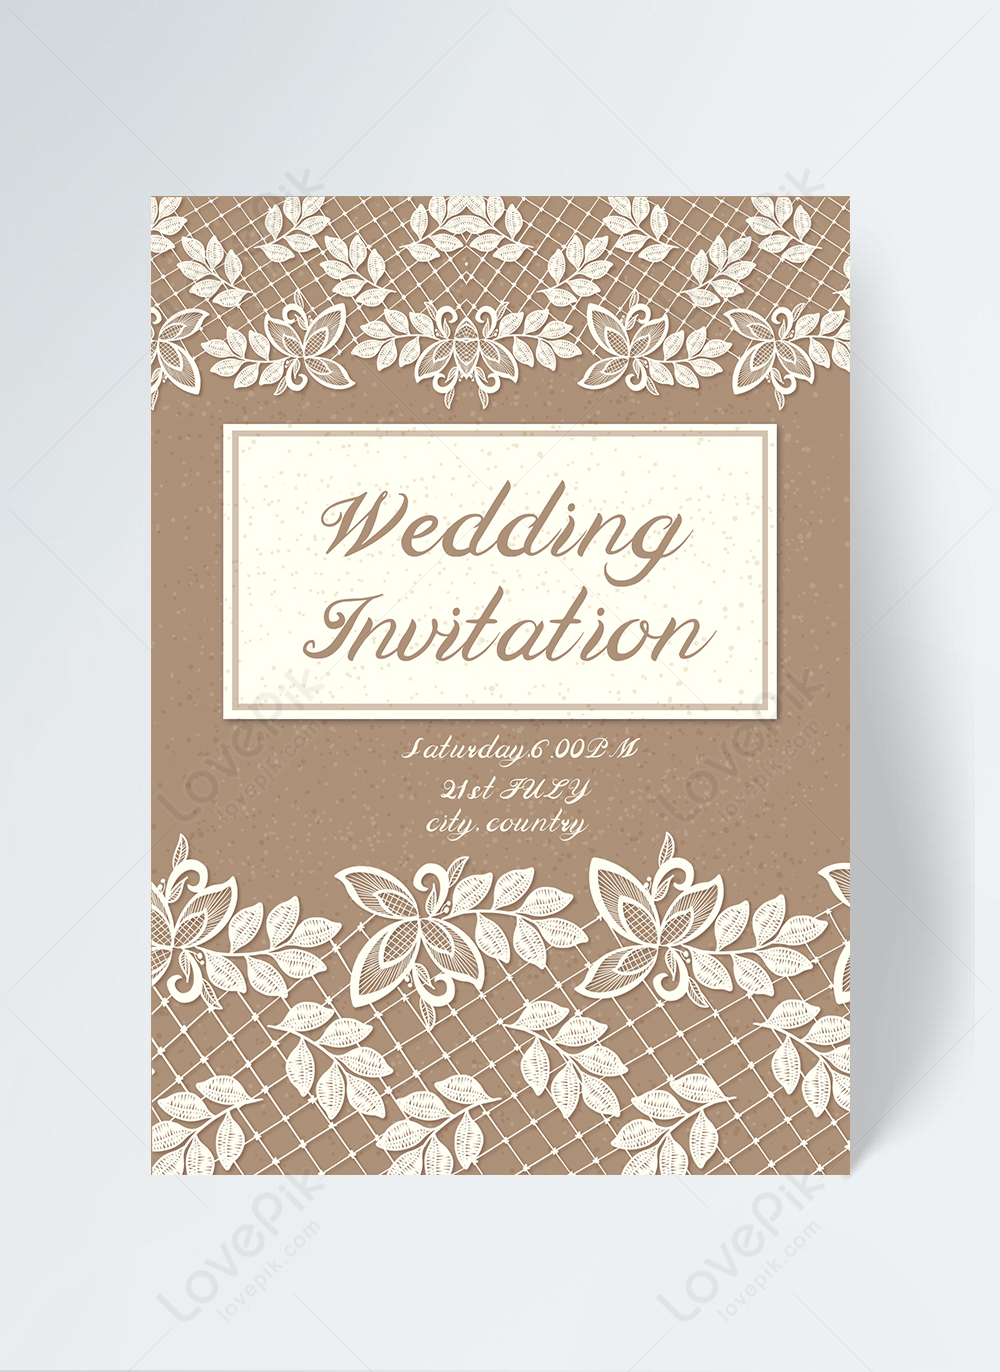 Kraft paper white lace flower wedding invitation template